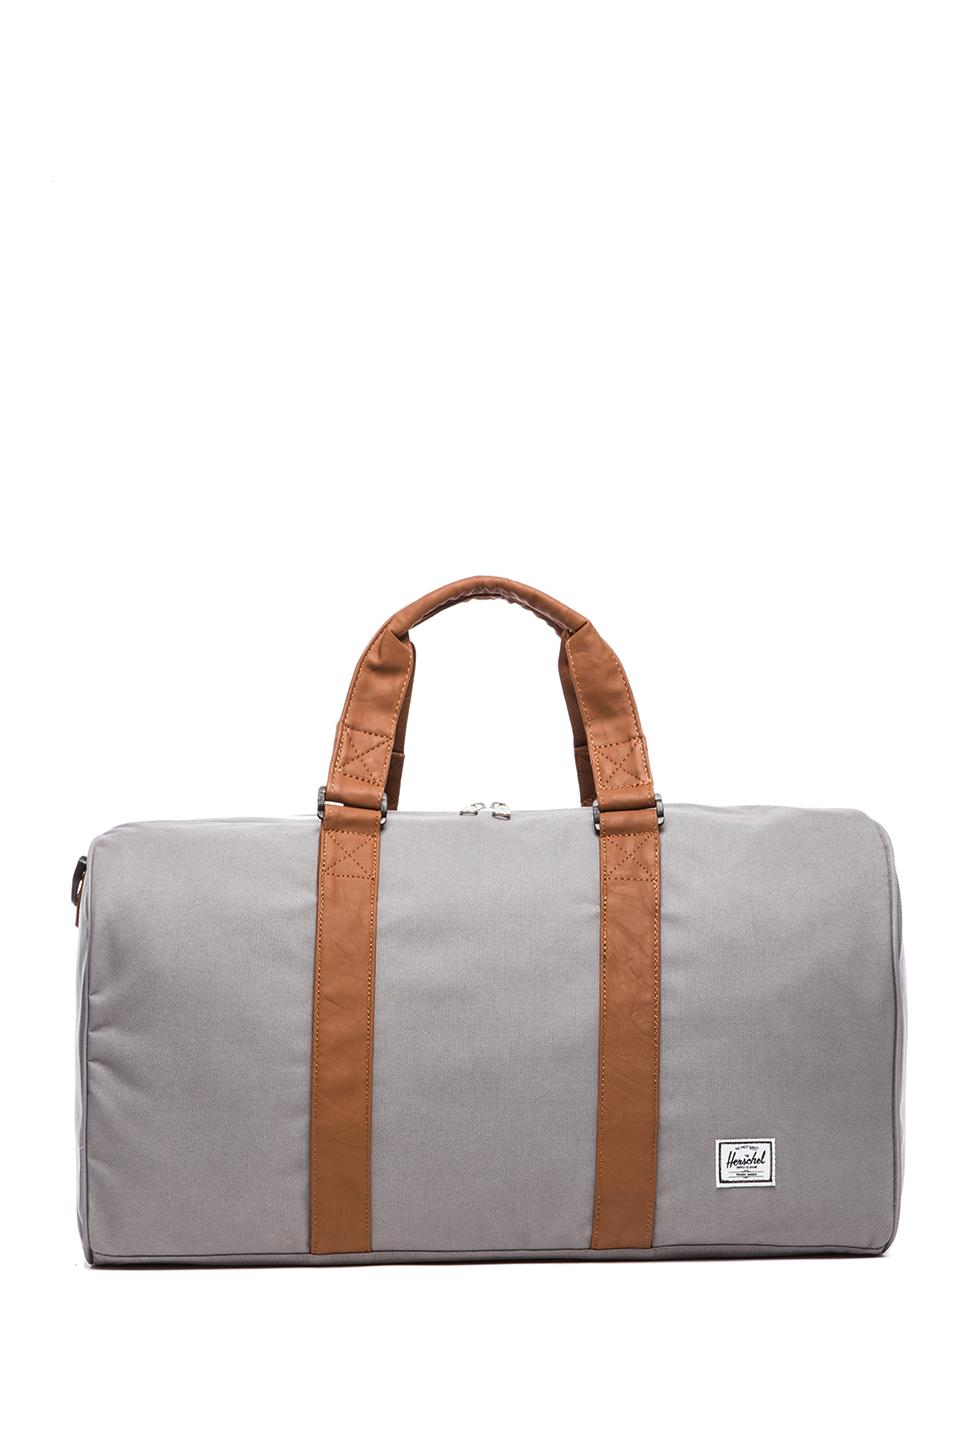 Herschel Supply Co. Ravine Bag in Grey/Tan